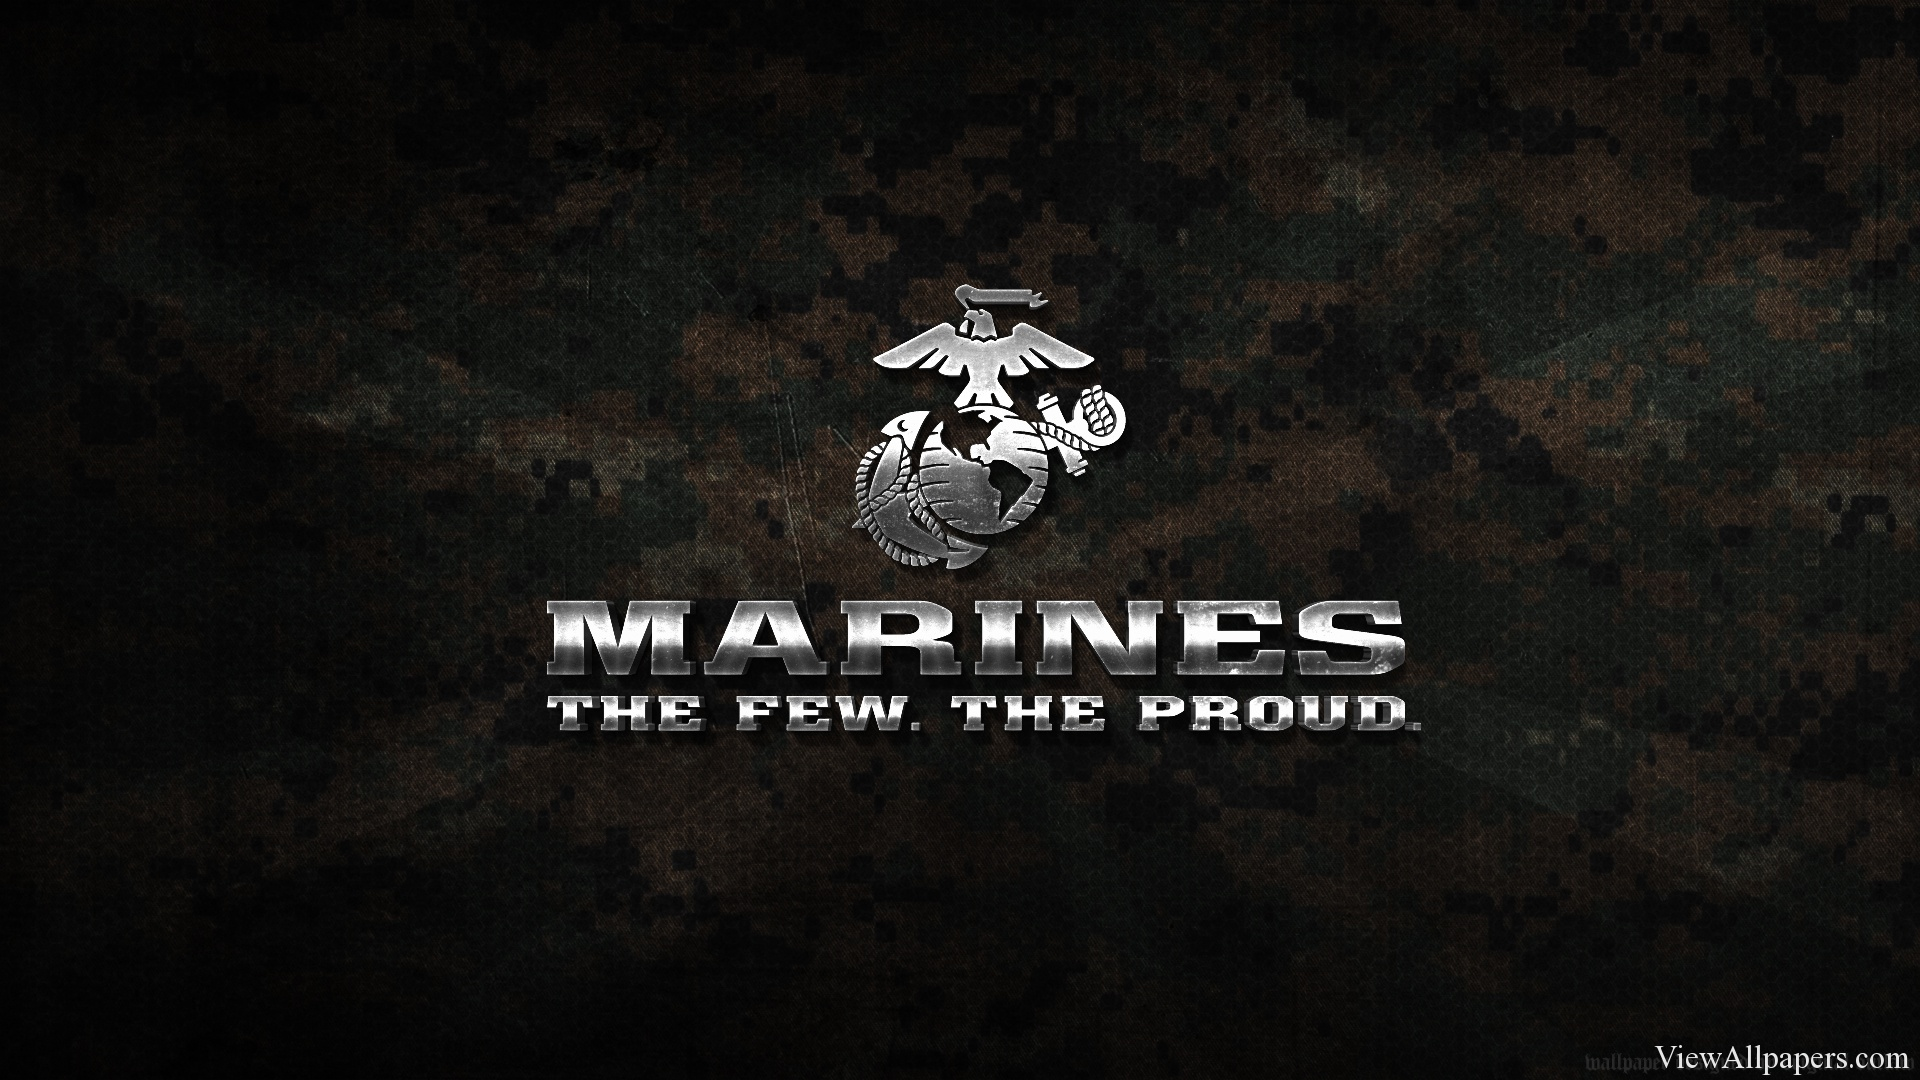 Marine Corps Logo For PC computers desktop background smartphones 1920x1080